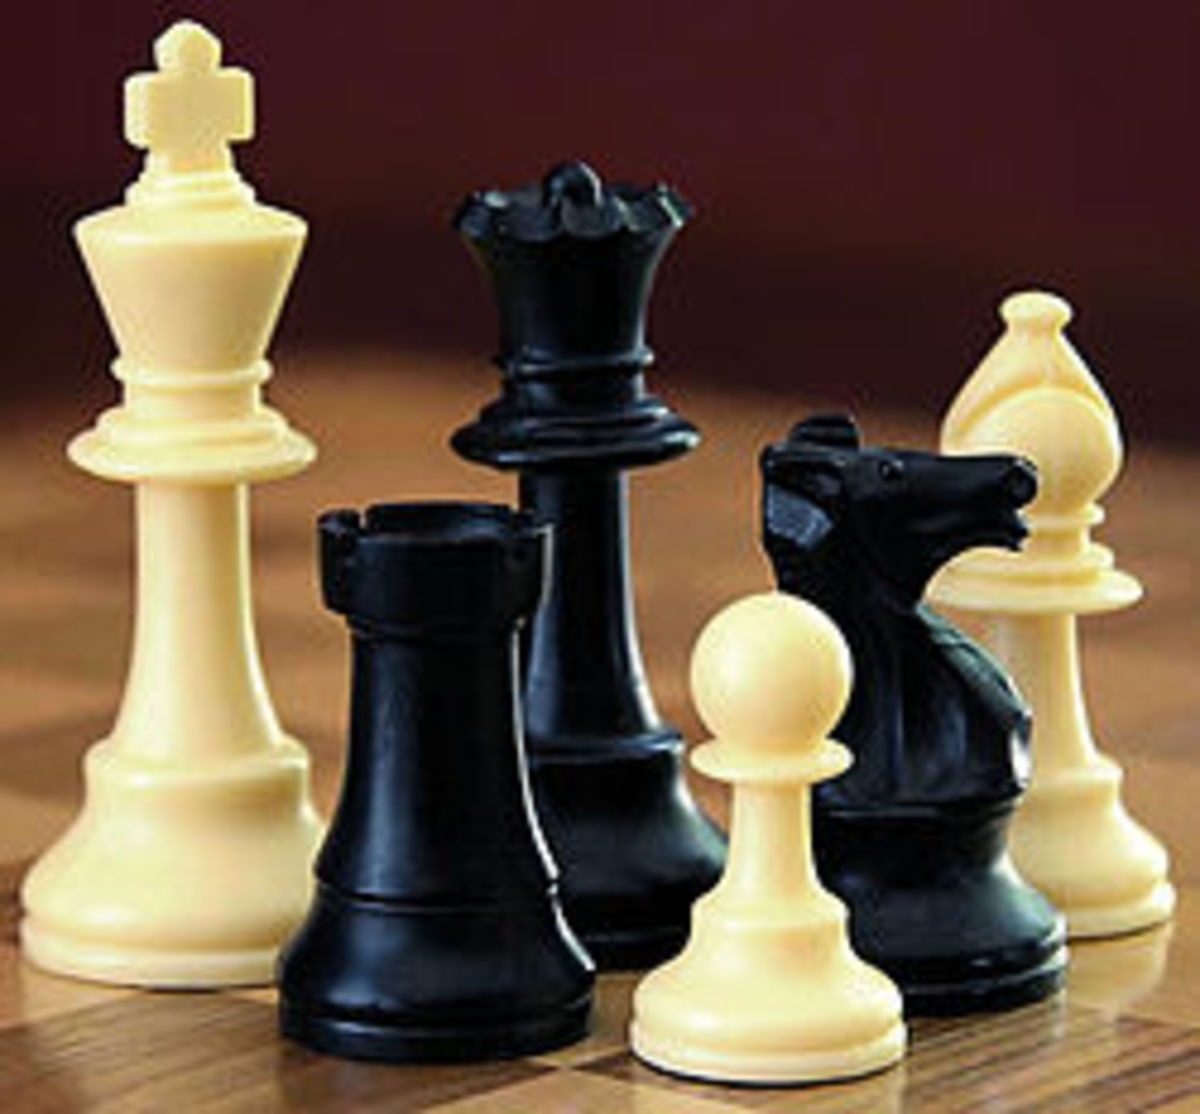 Chess is a good way to cultivate critical thinking skills